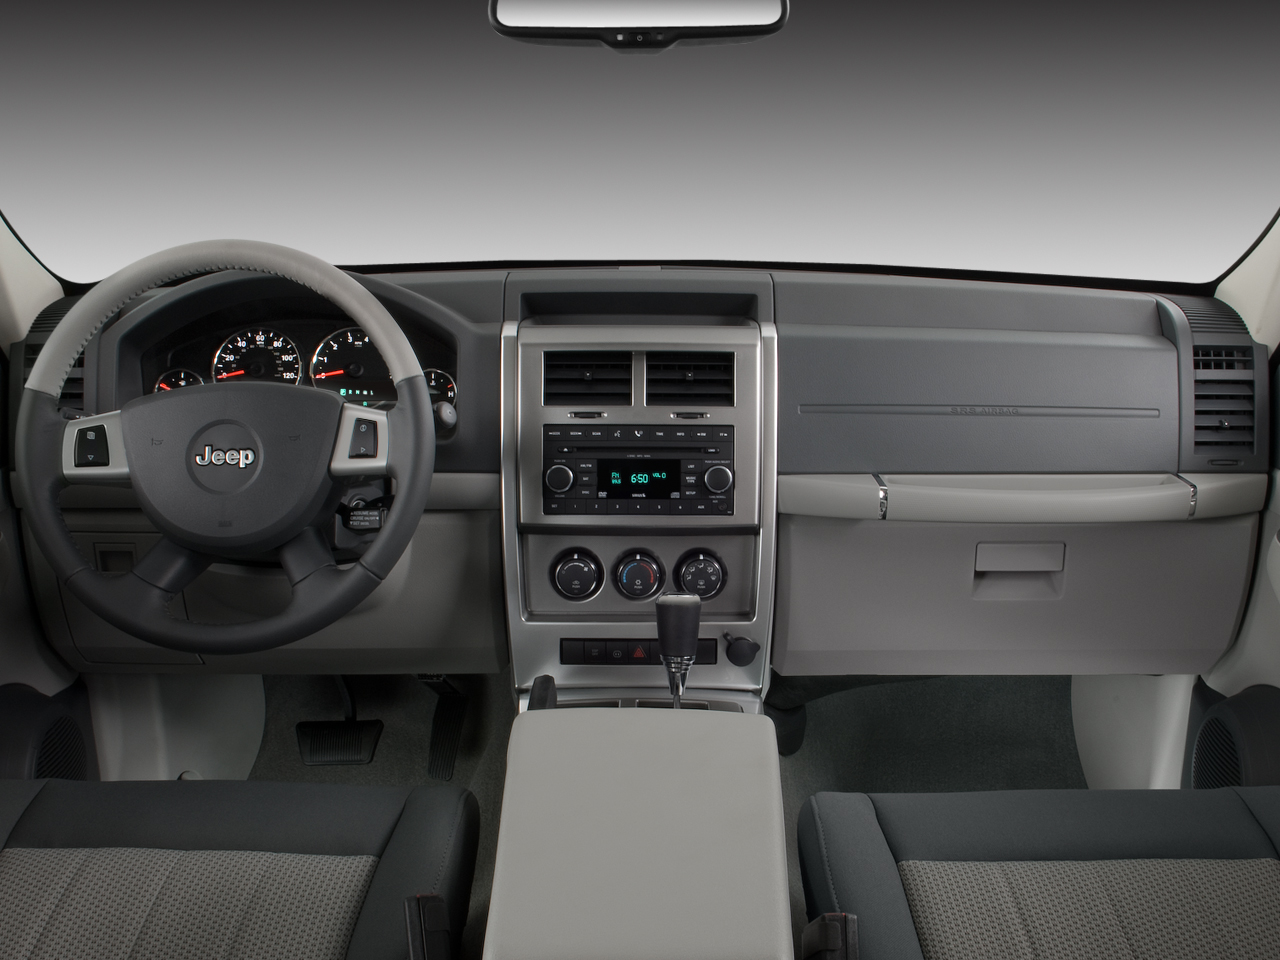 preview: 2008 jeep liberty - latest news, features, and auto show